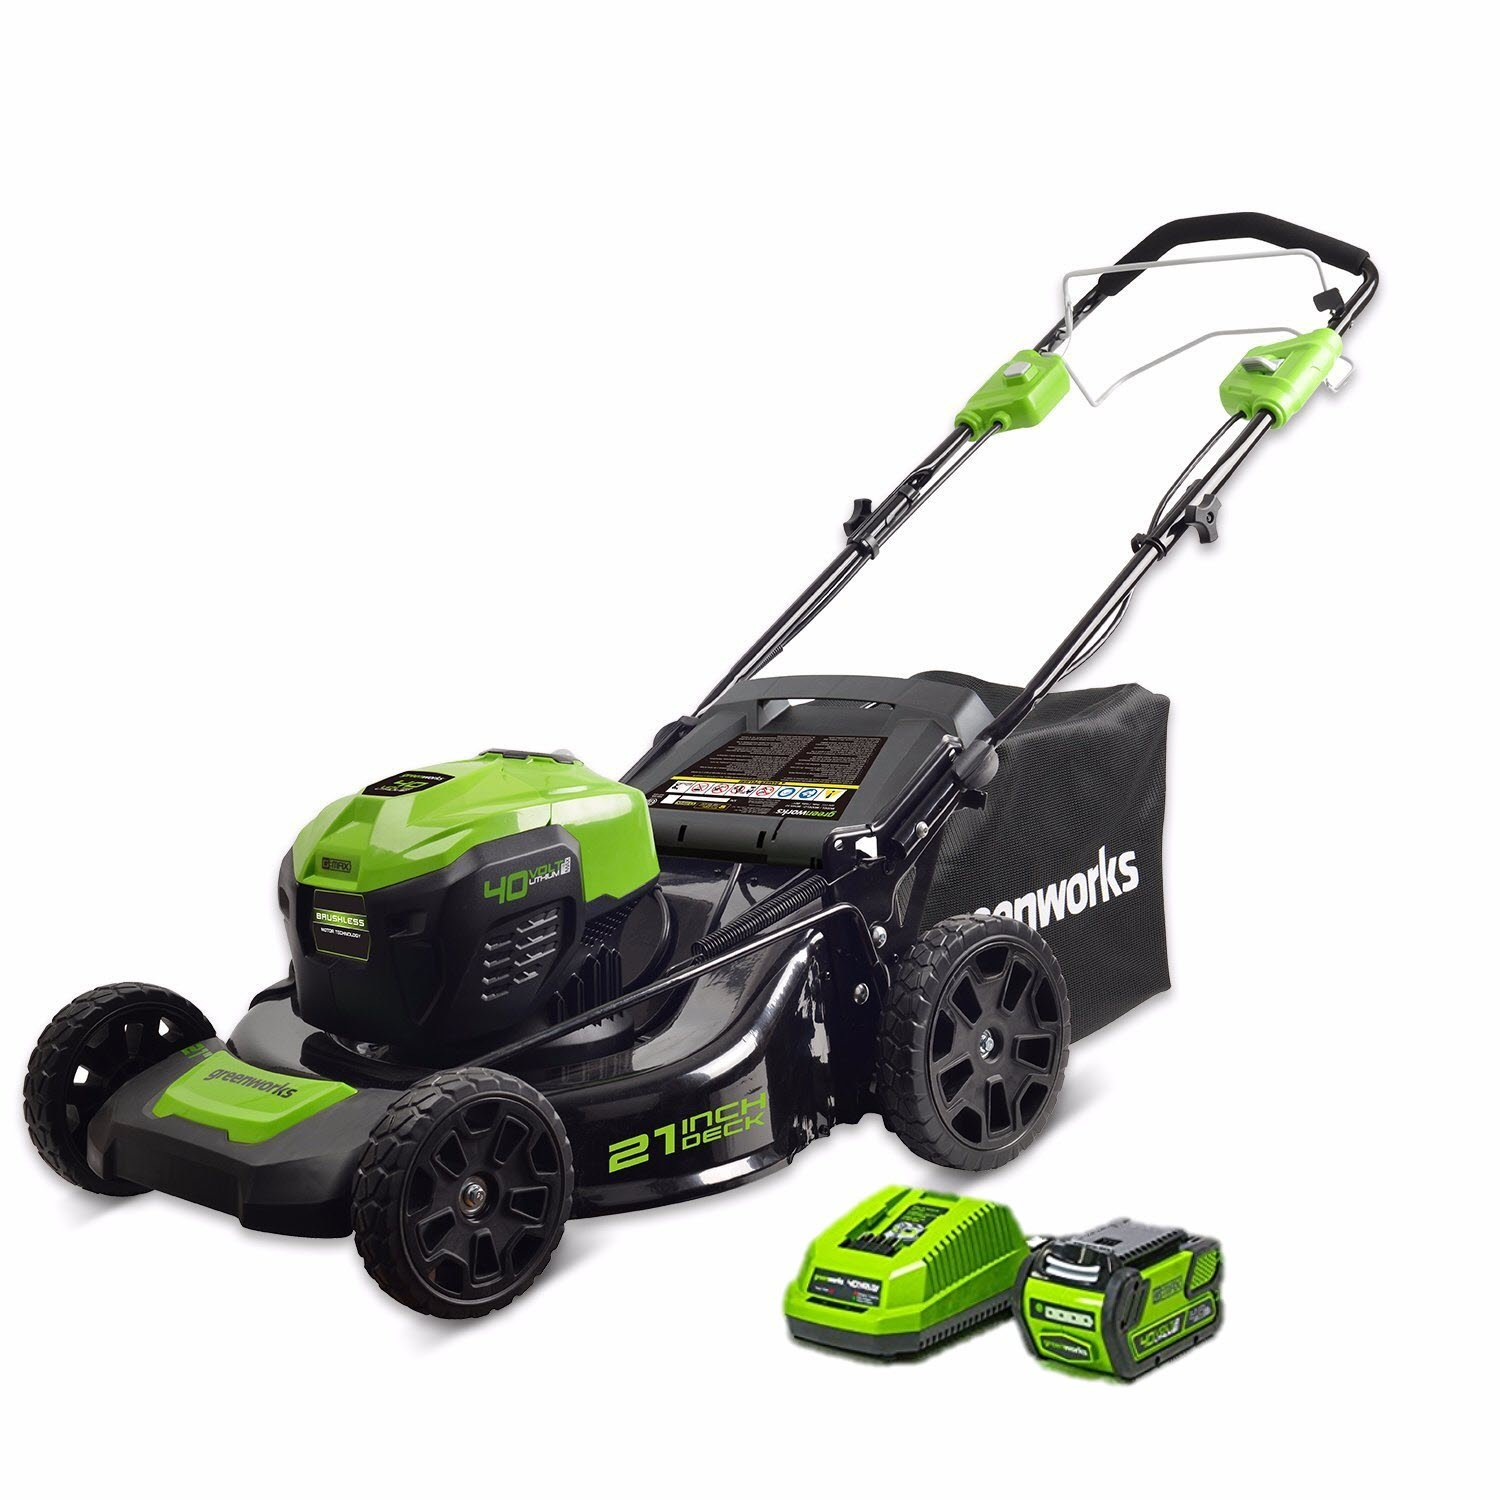 Greenworks Self-Propelled Cordless Lawn Mower Review